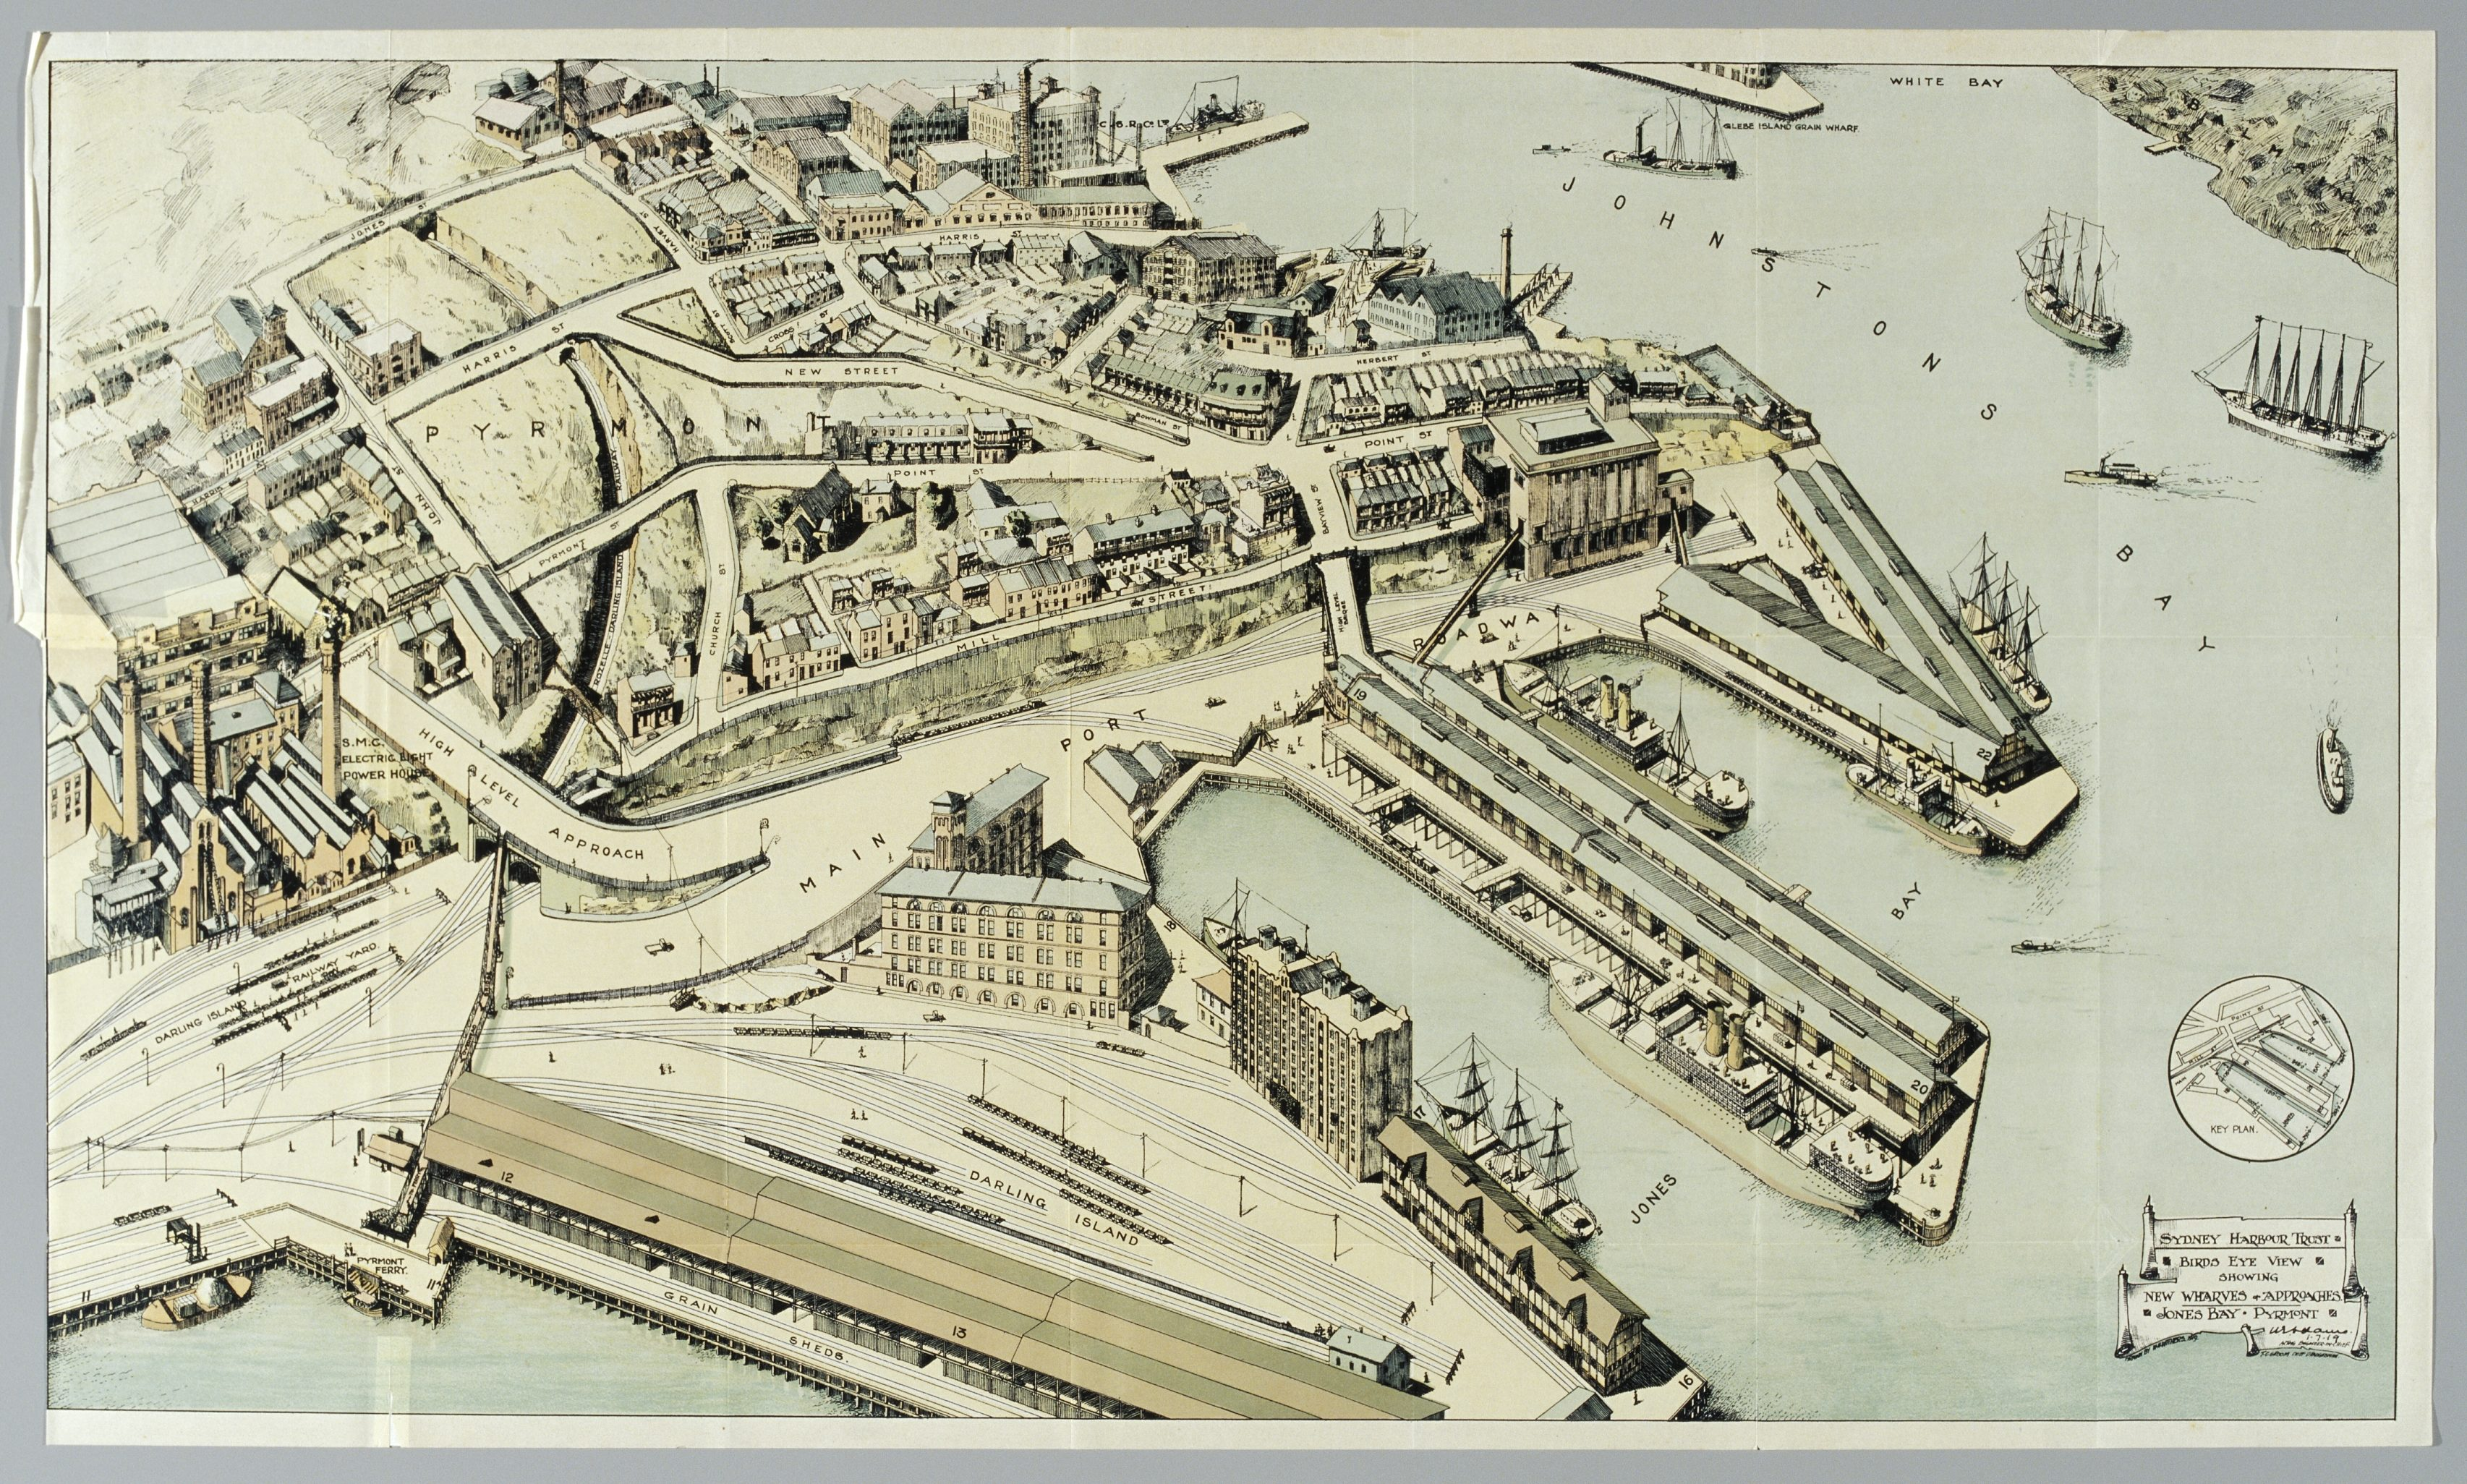 Coloured map drawn from above showing wharves and buildings.